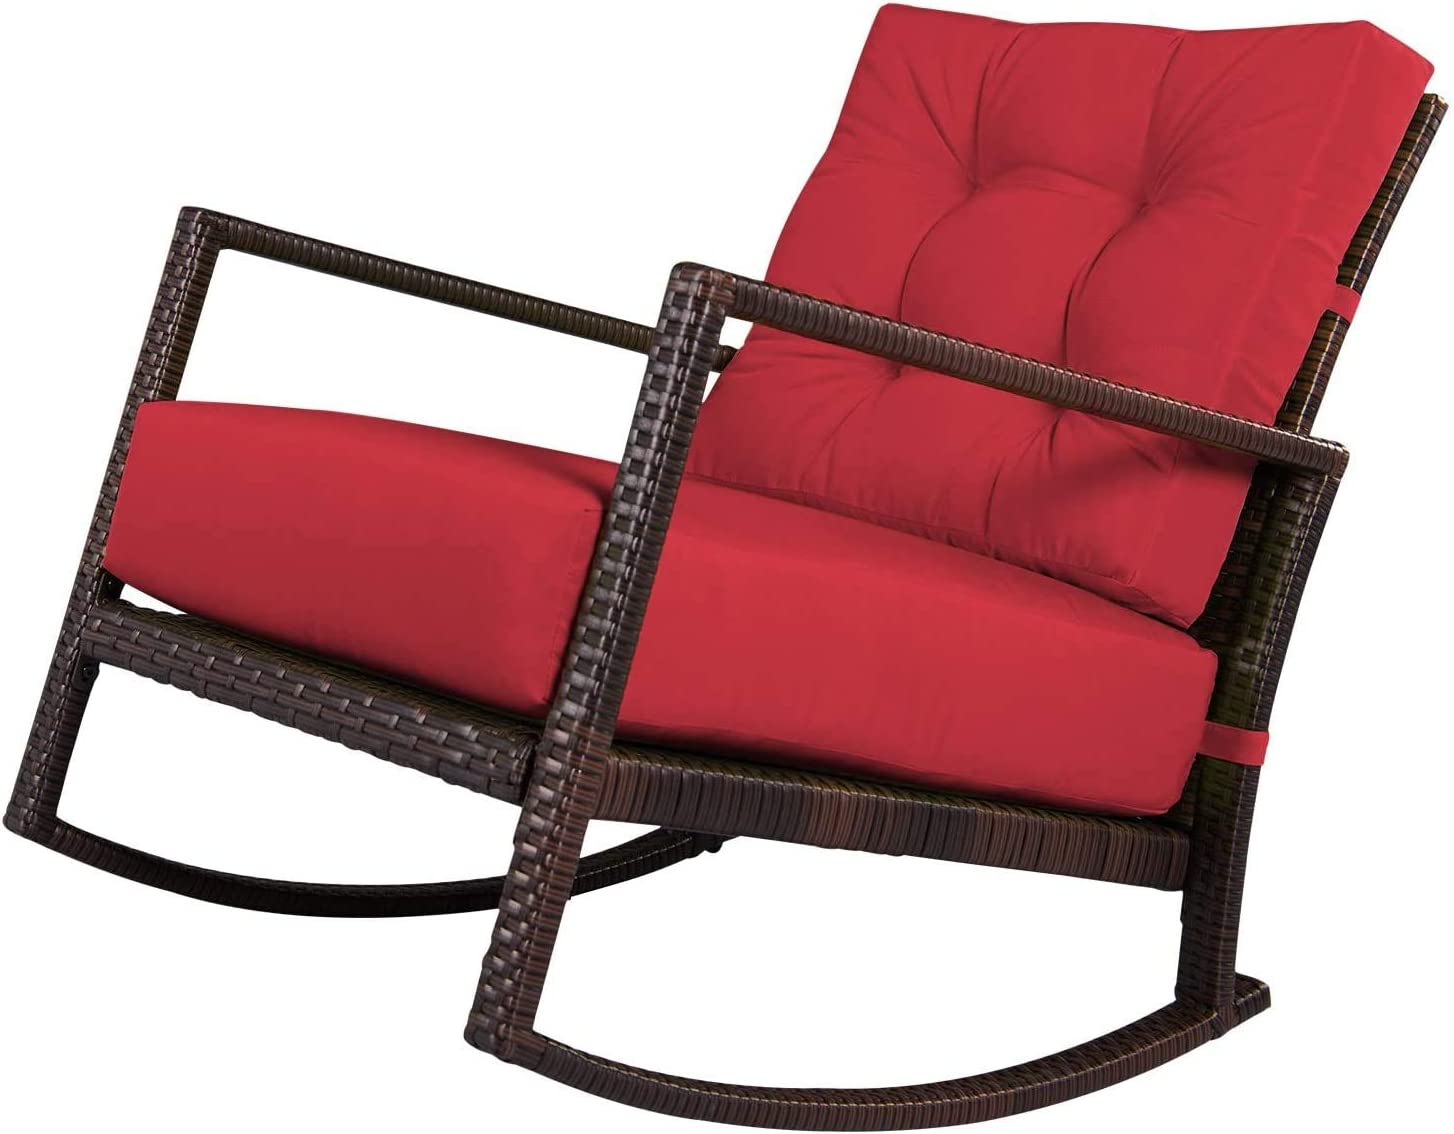 SOLAURA Outdoor Rocking Wicker Chair